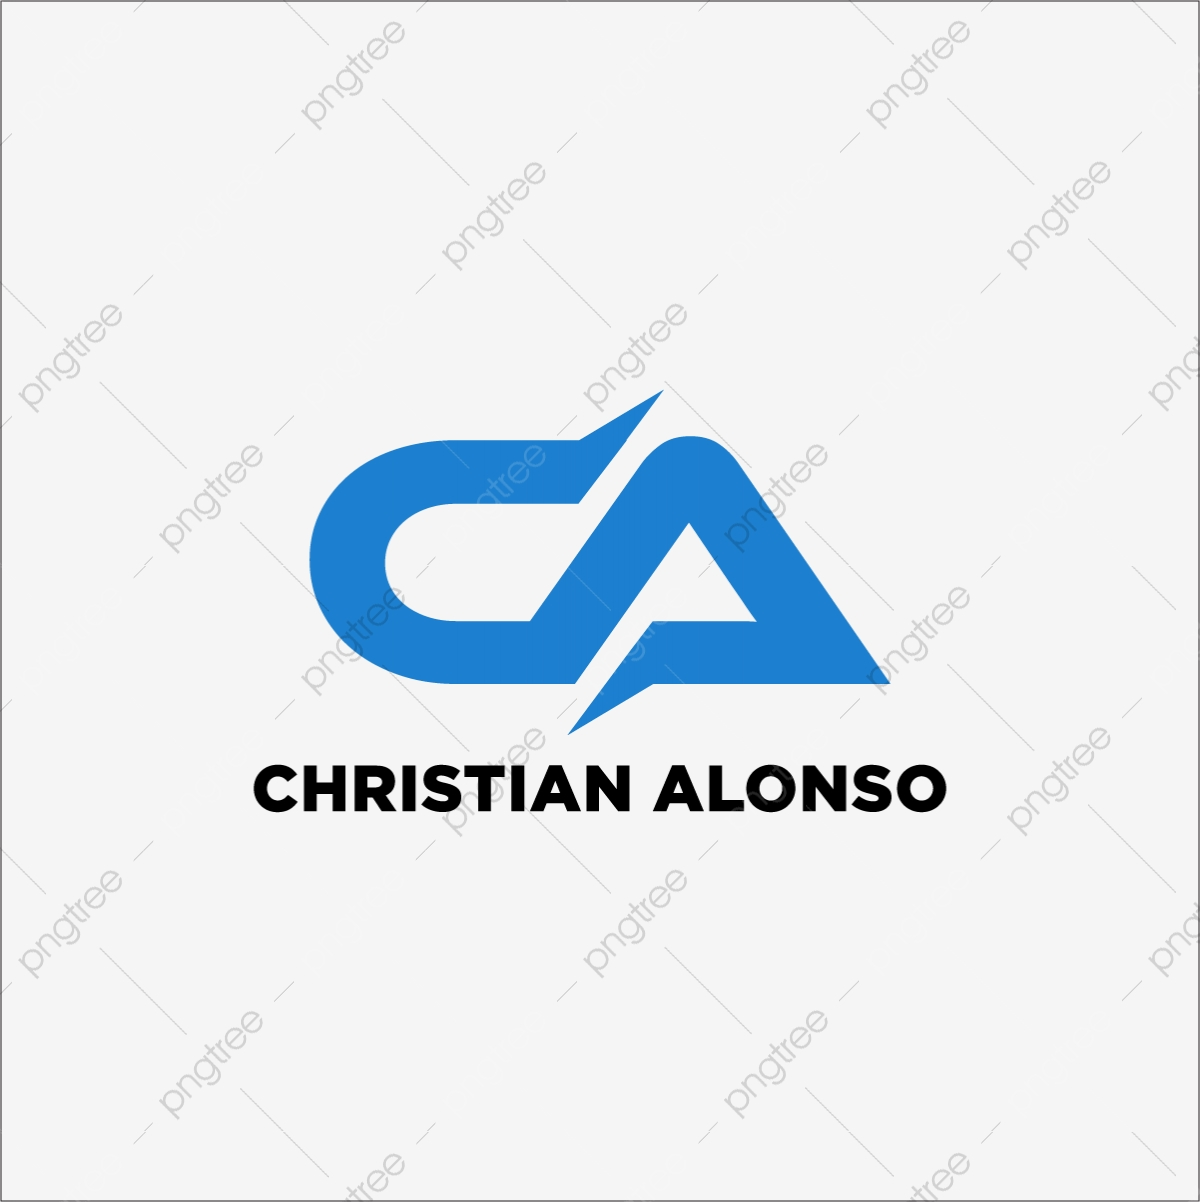 Ca C A Swoosh Letter Logo Design With Modern Vector Template For Free Download On Pngtree